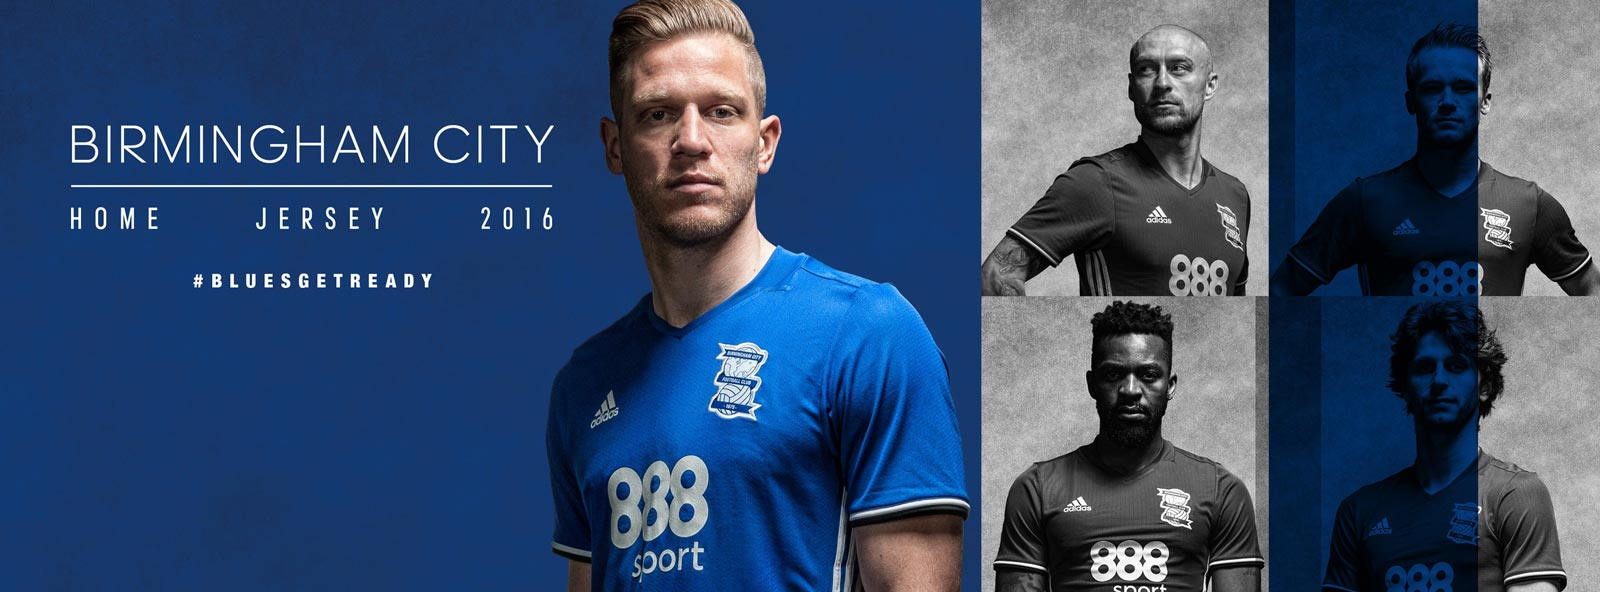 ad66c6409 Birmingham City 2016 17 Home Kit Launched